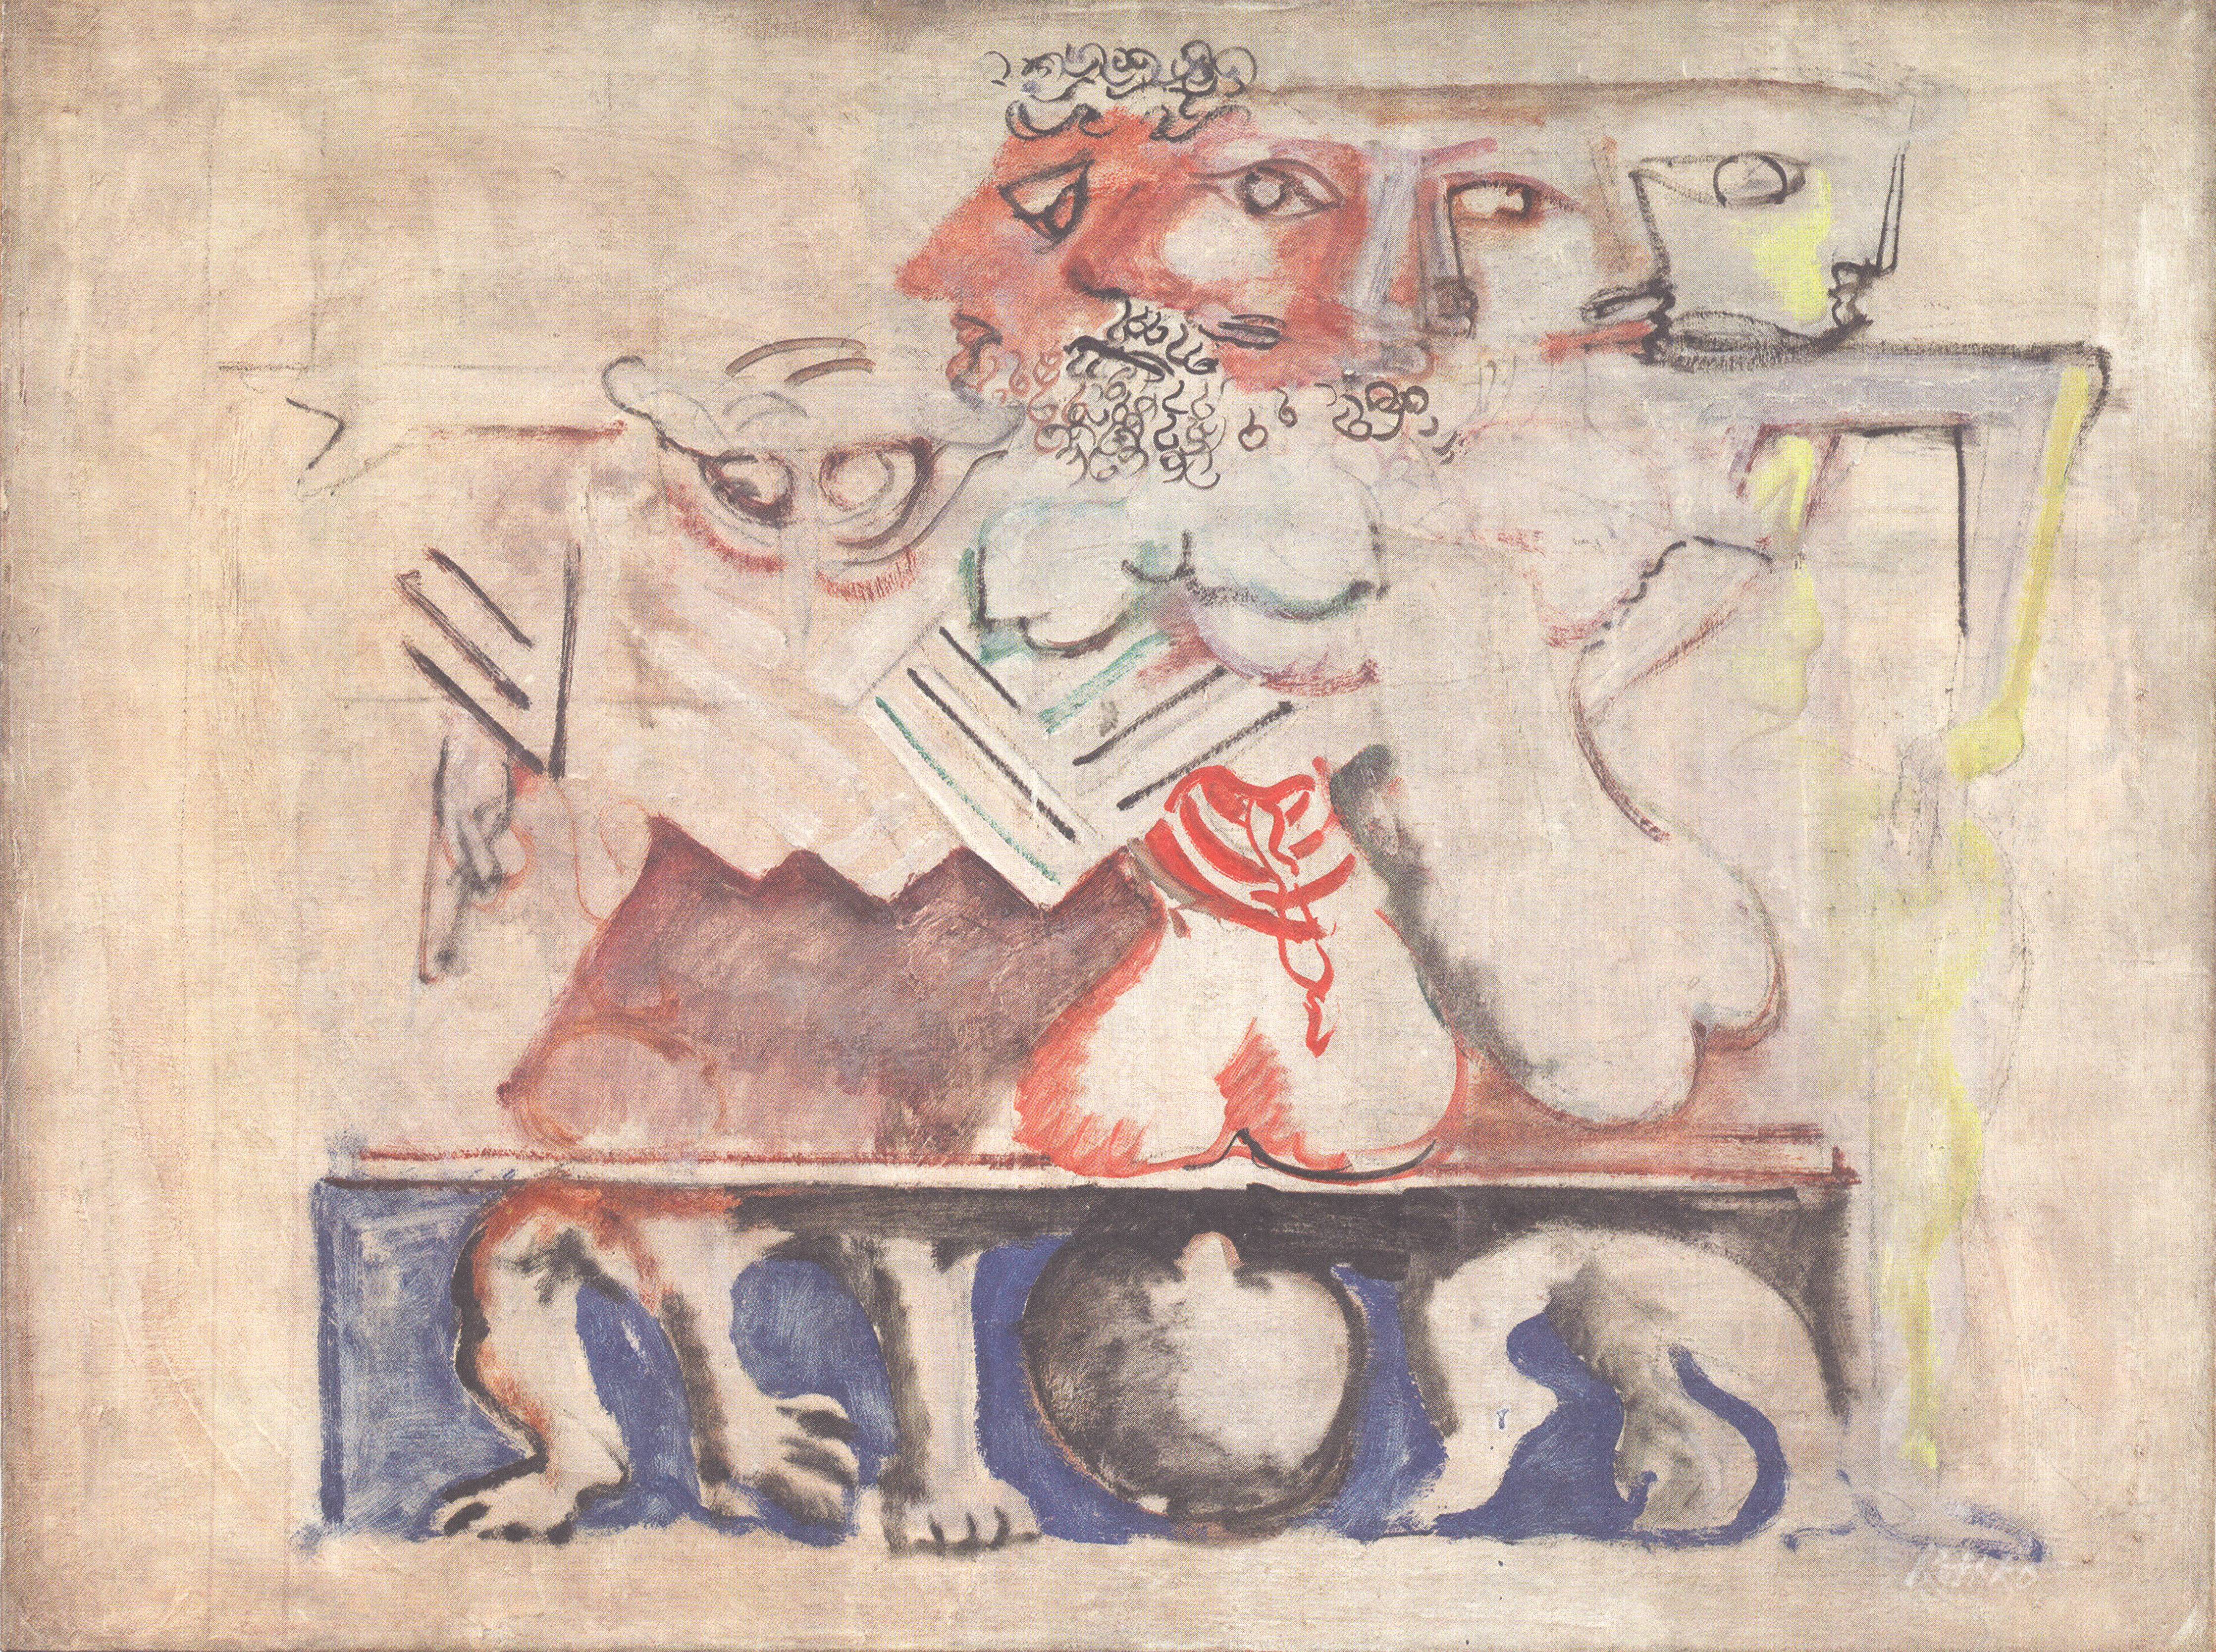 Mark-Rothko-Antigone-1941.-Oil-paint-and-charcoal-on-canvas-86-x-116-cm